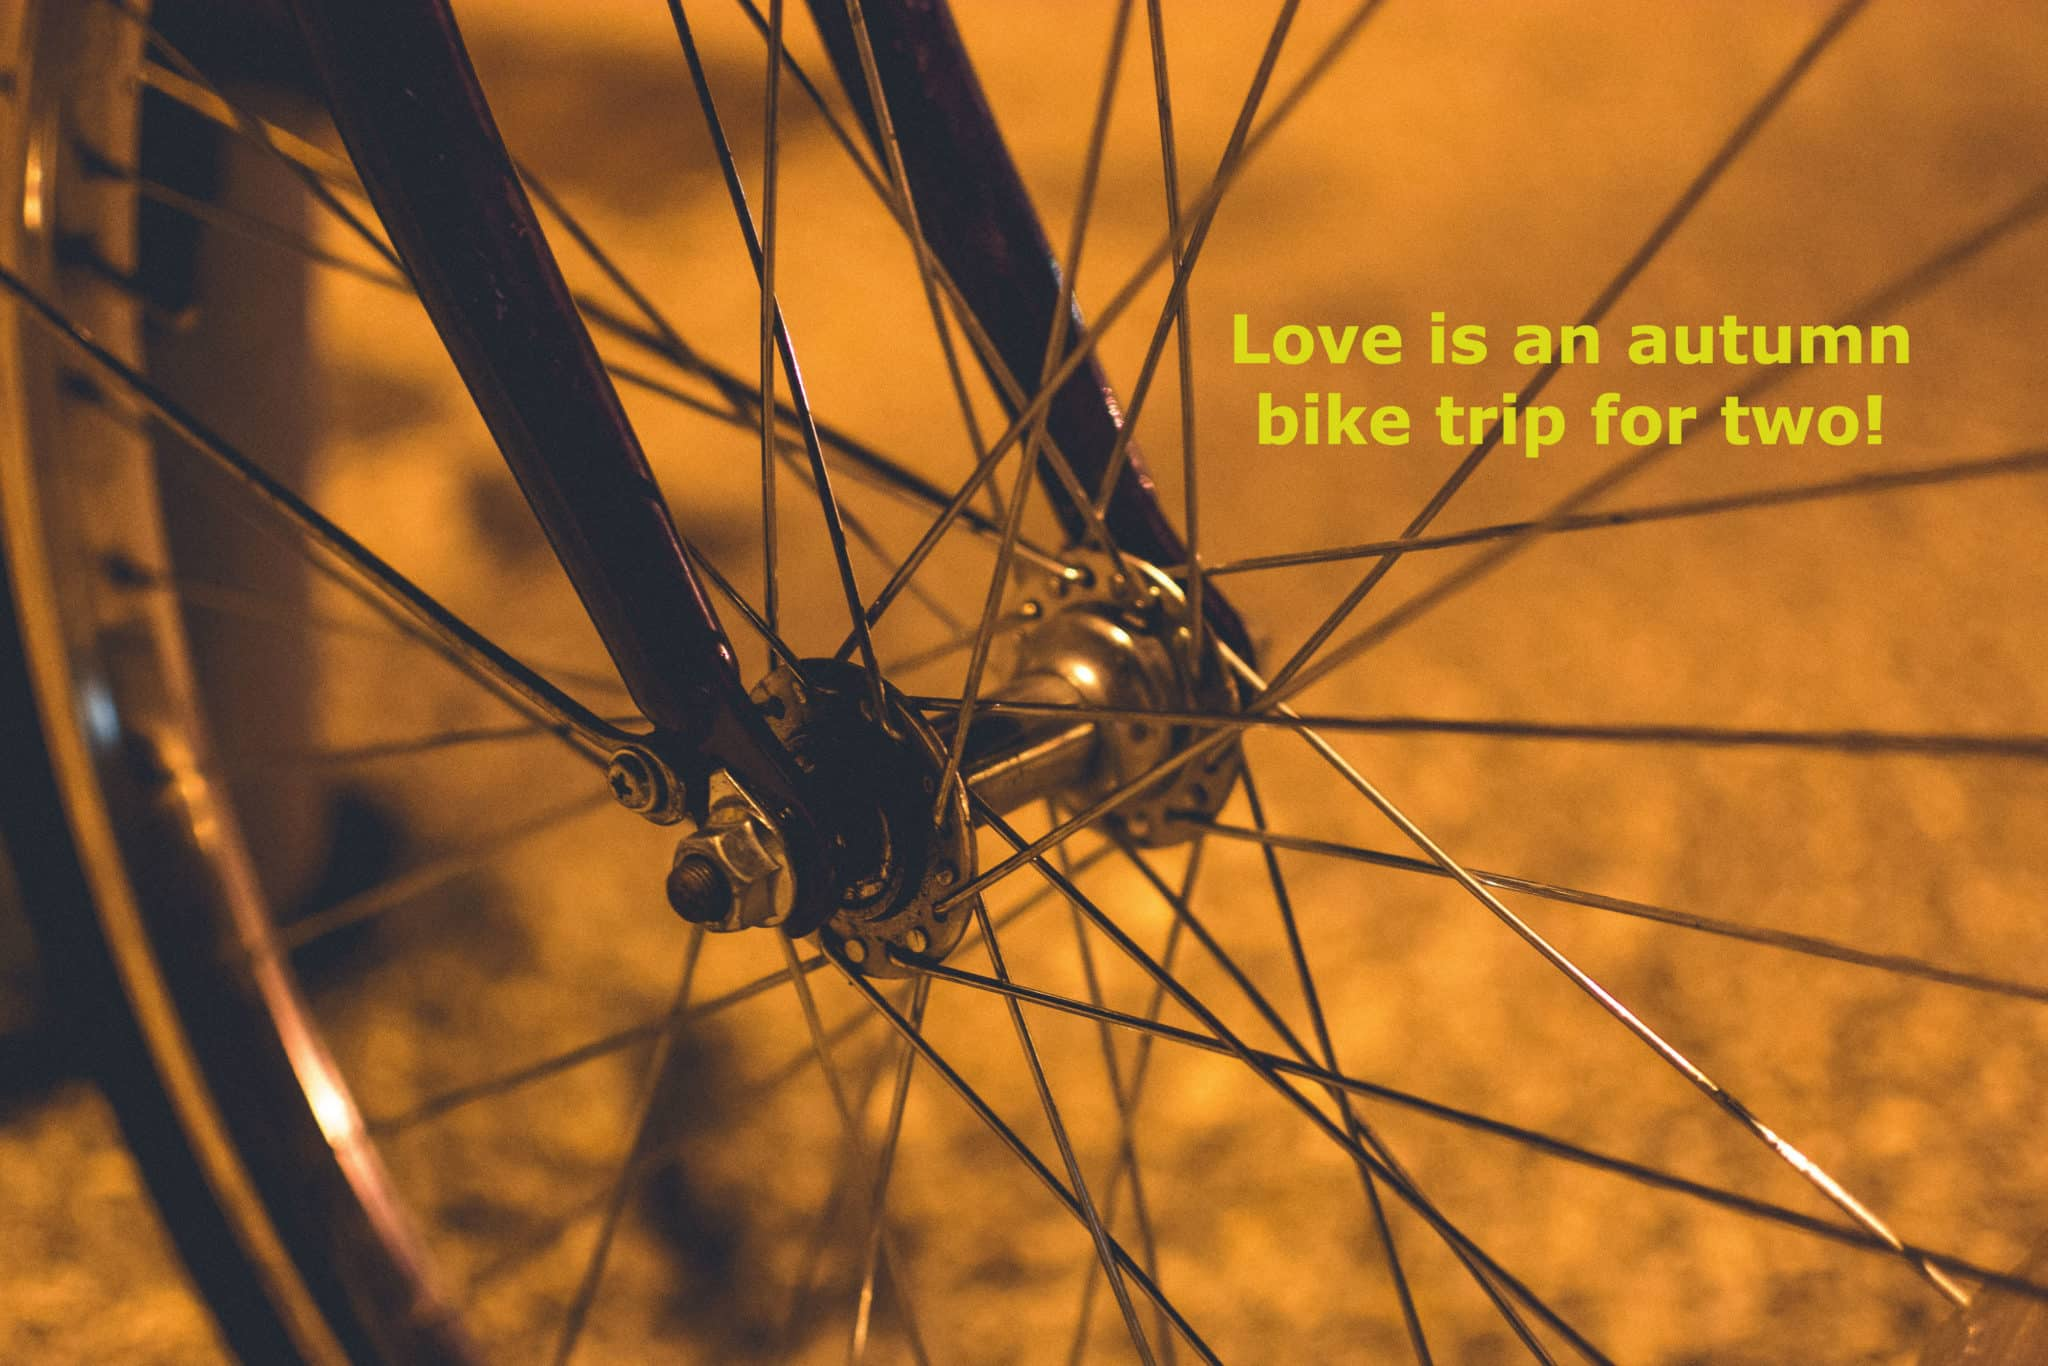 Close up shot of bicycle spokes with title: Love is an autumn bike trip for two!